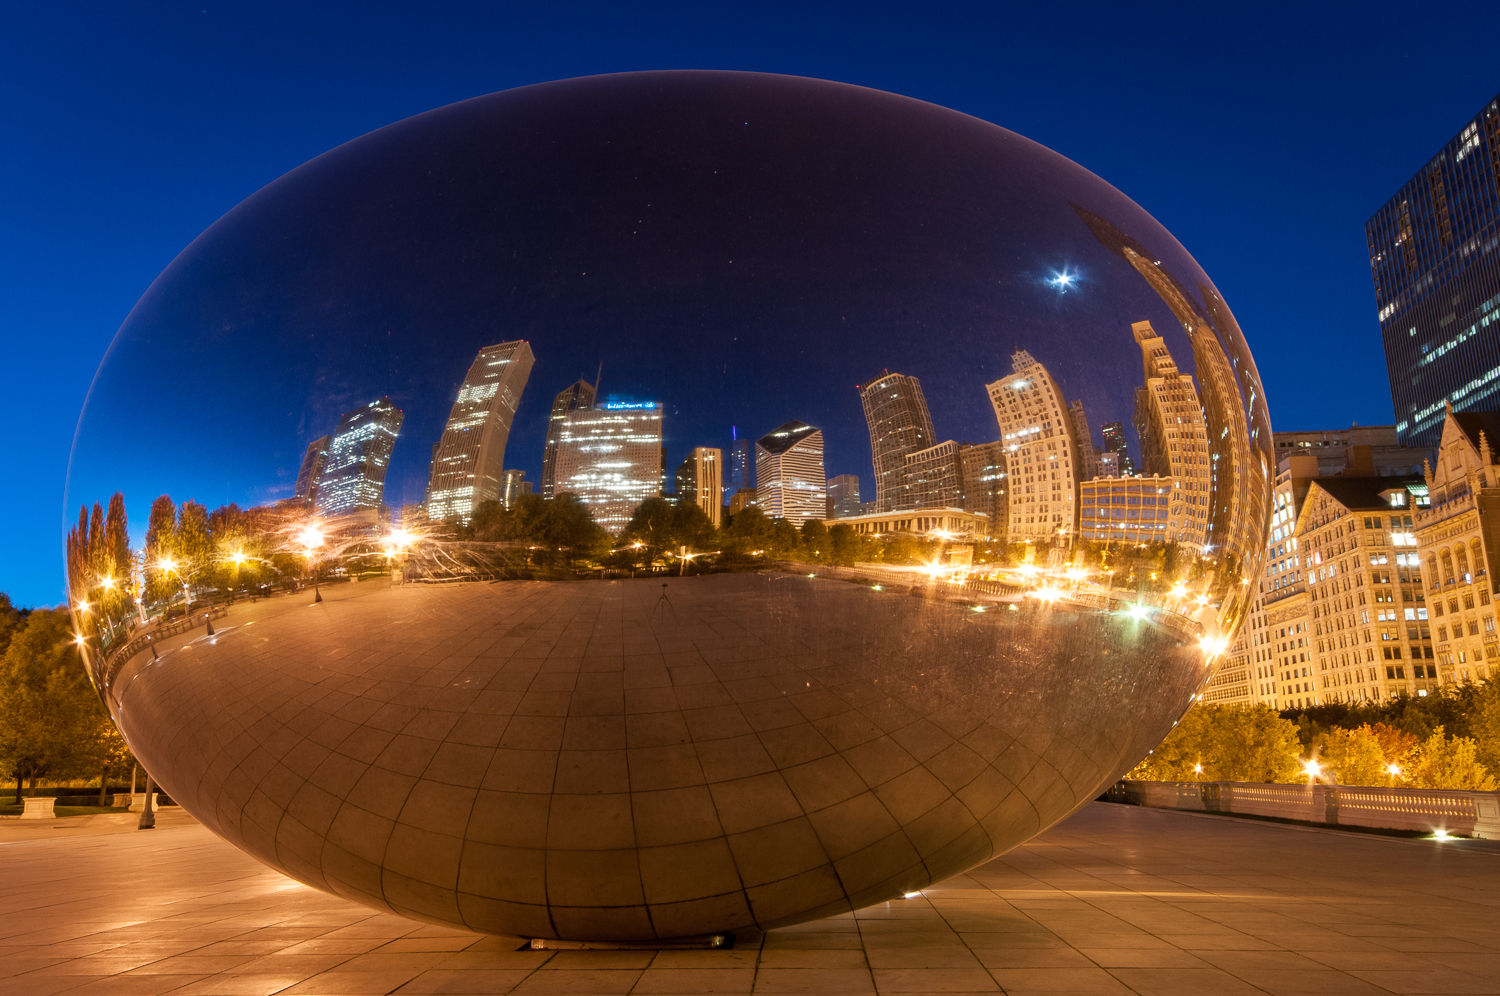 Cloud Gate reflections, Chicago